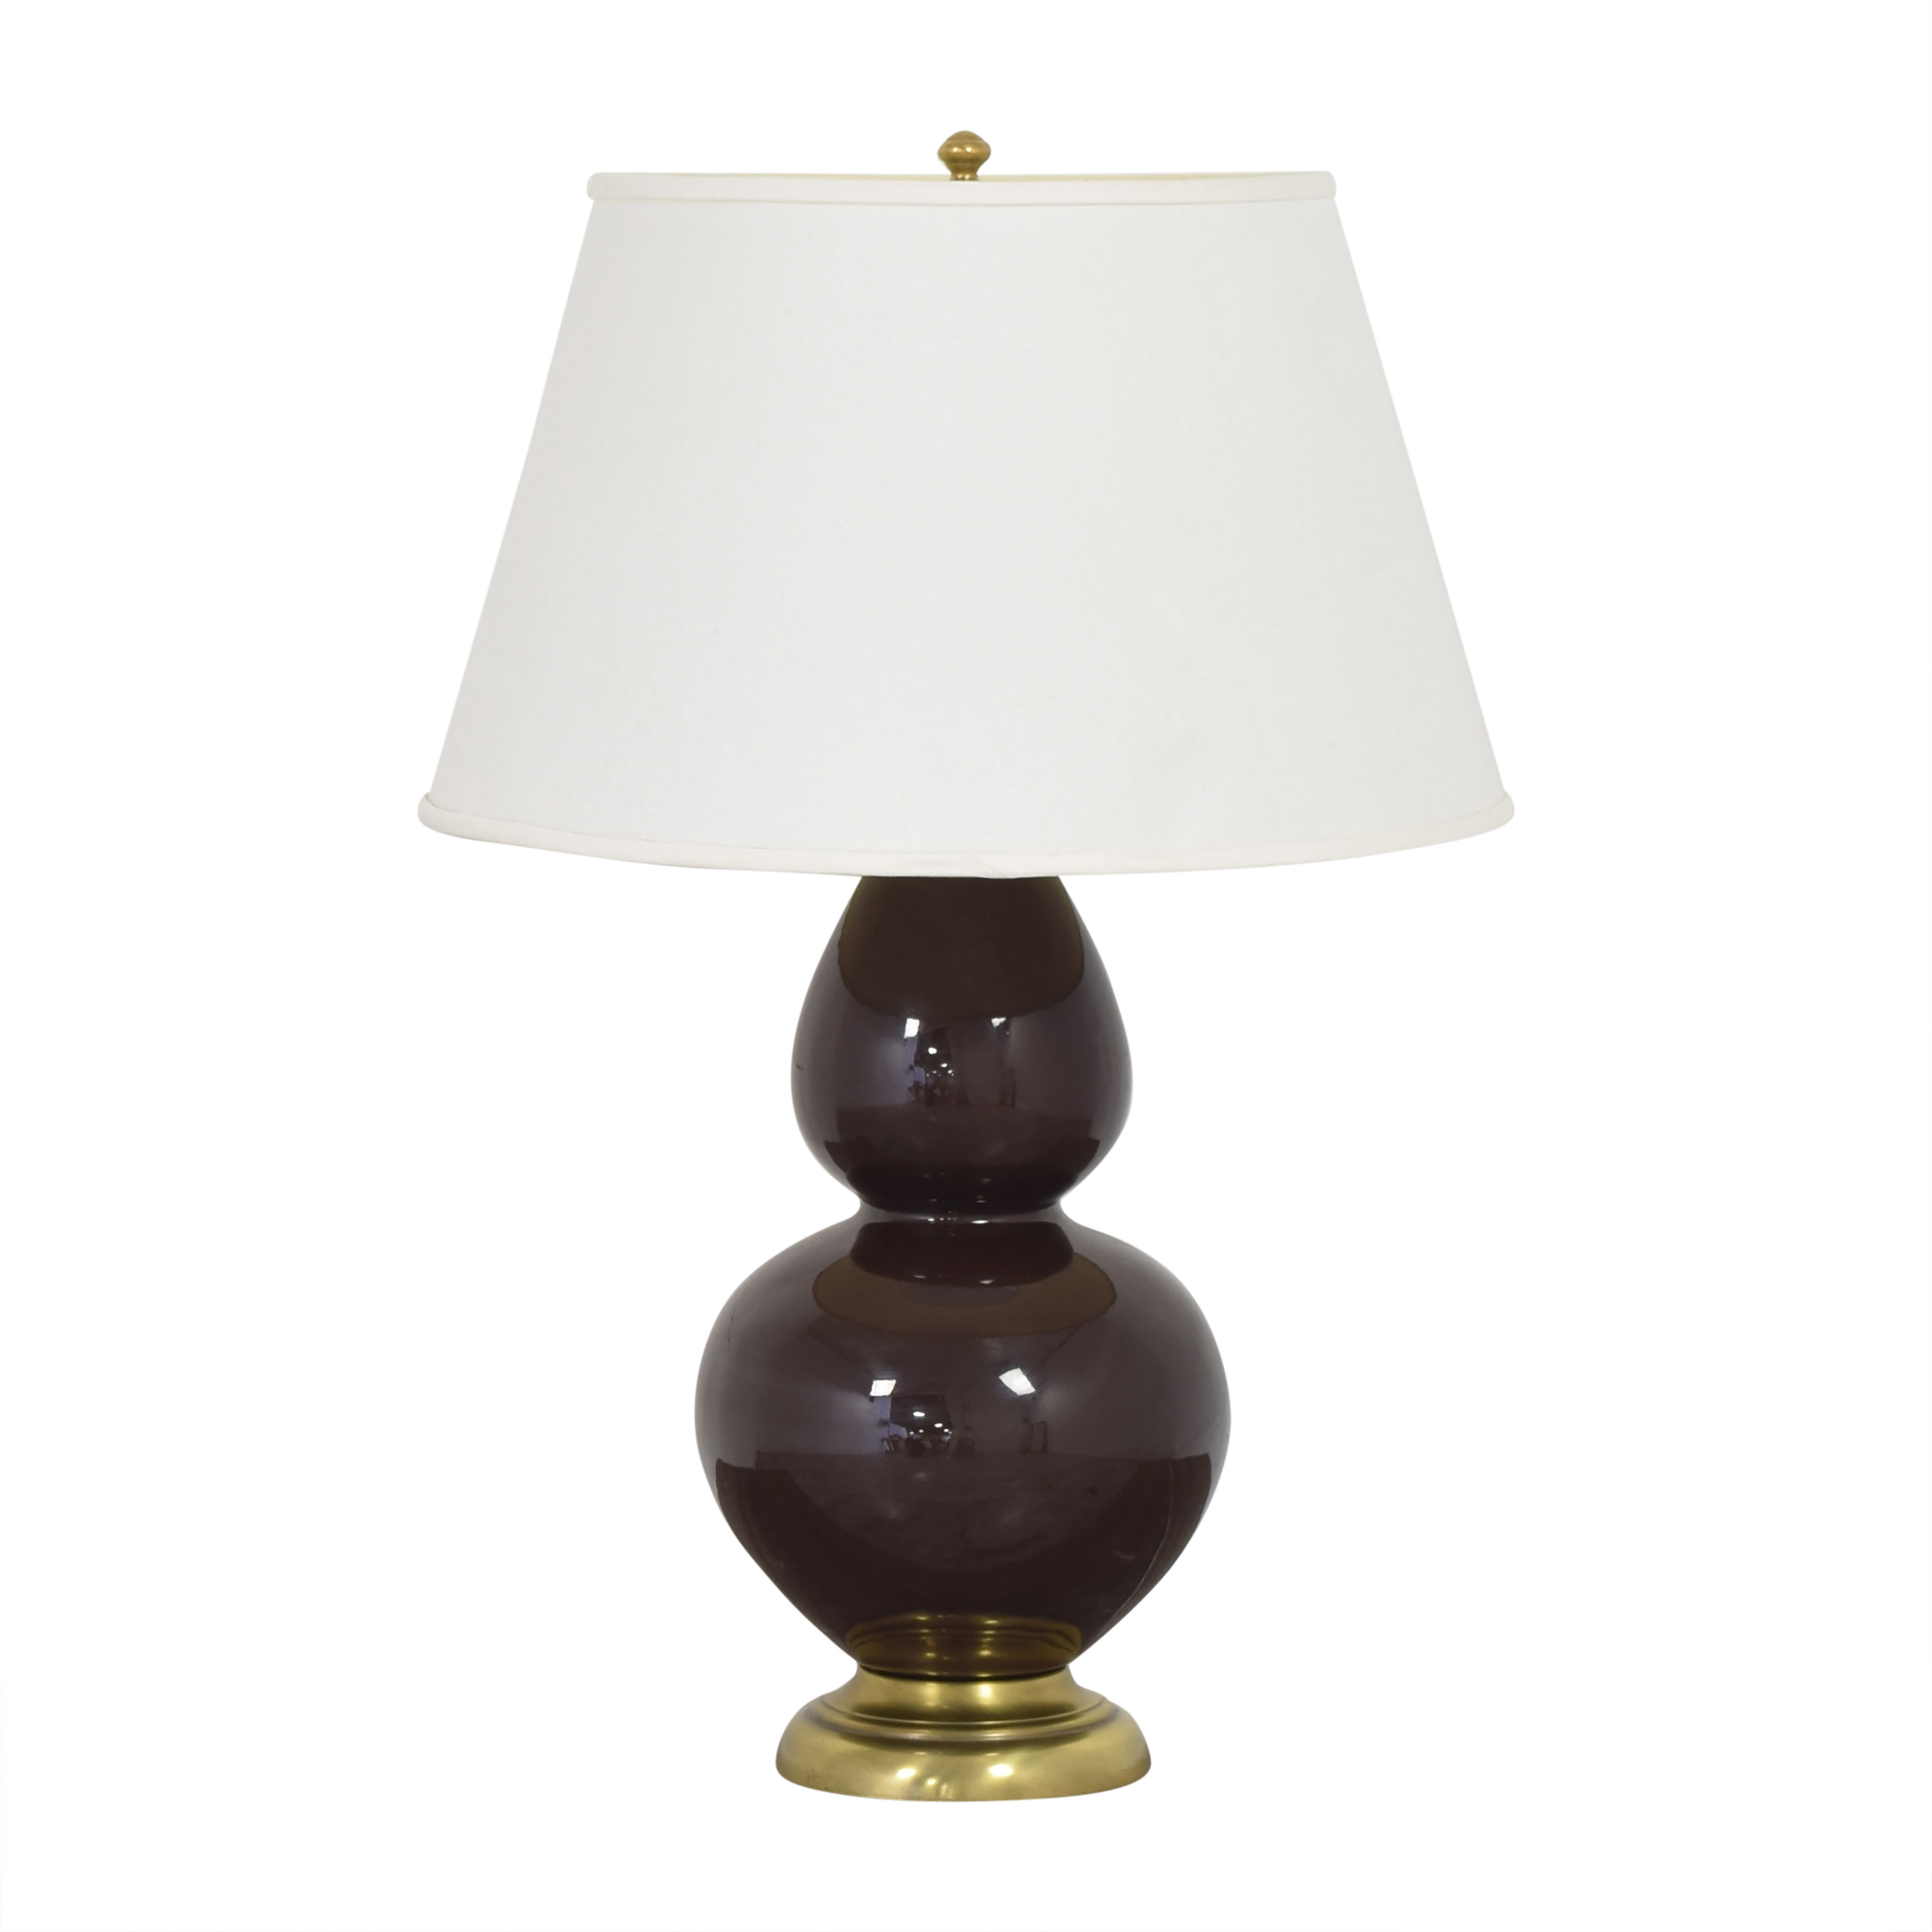 Gourd Table Lamp second hand